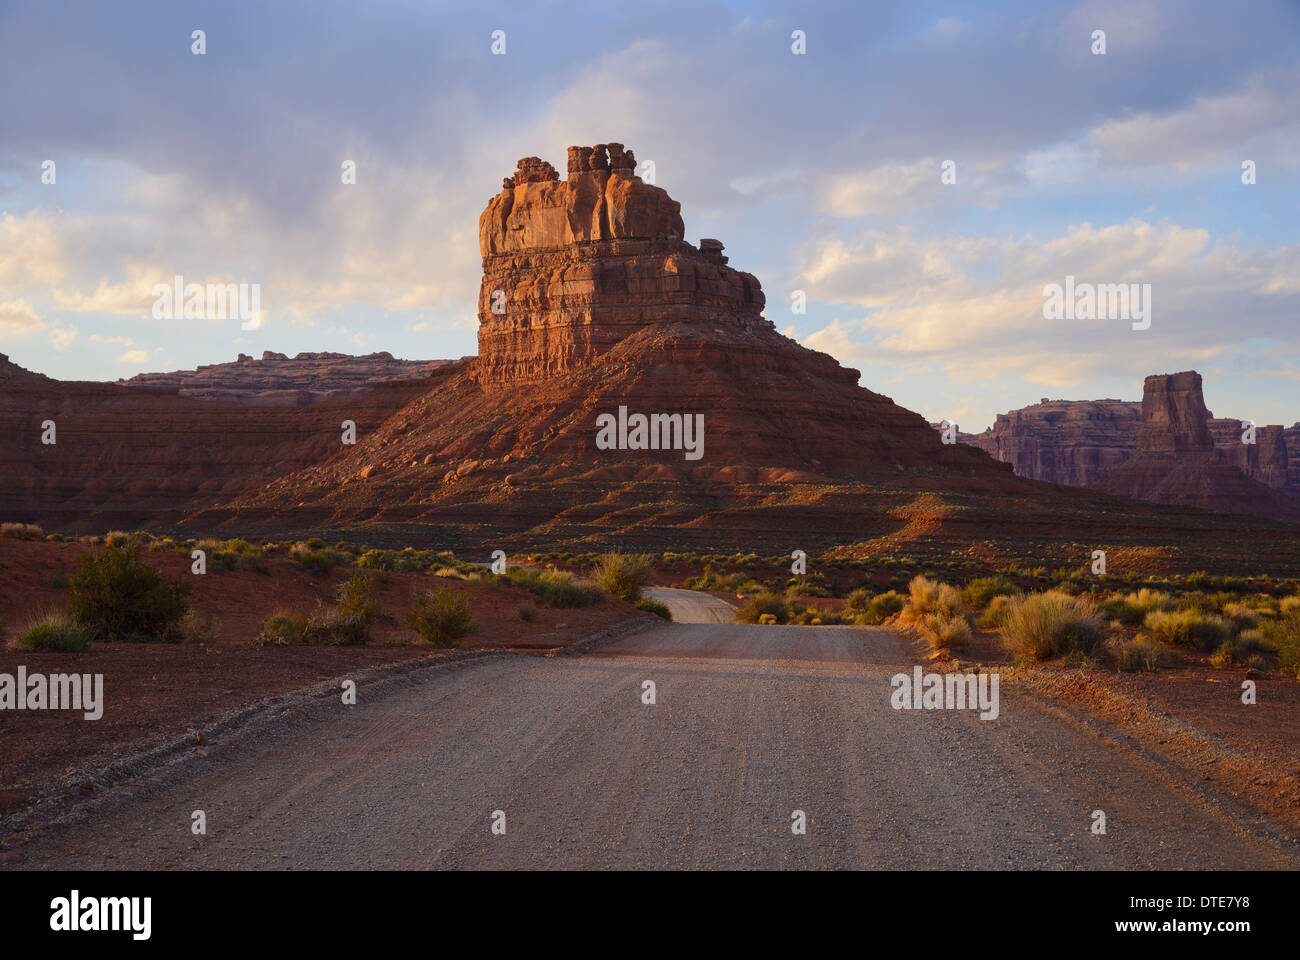 Valley of the Gods, Utah, USA - Stock Image